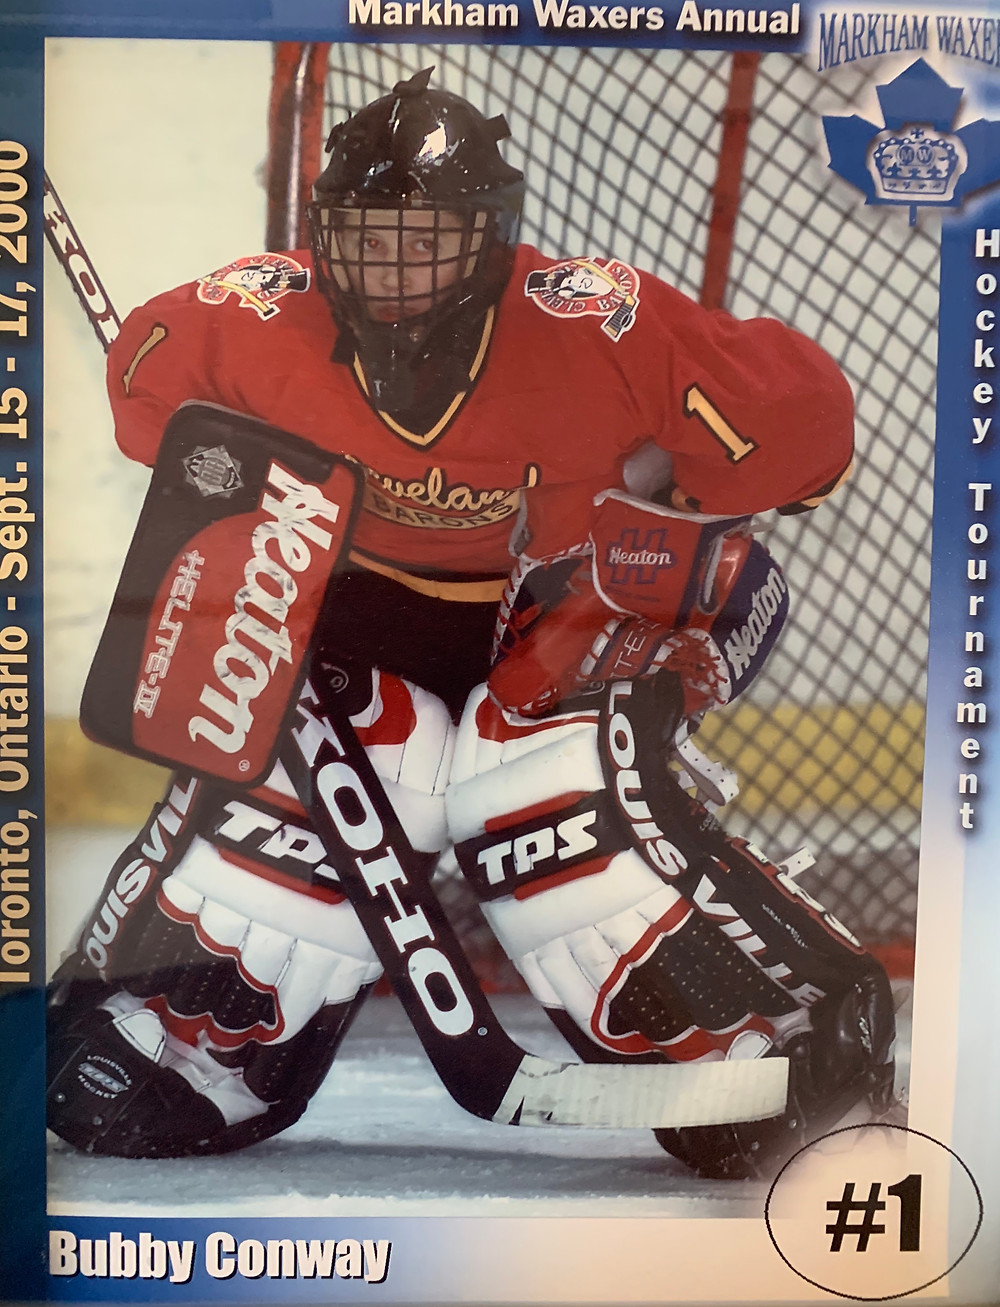 '88 Peewee Cleveland Barons in 2000